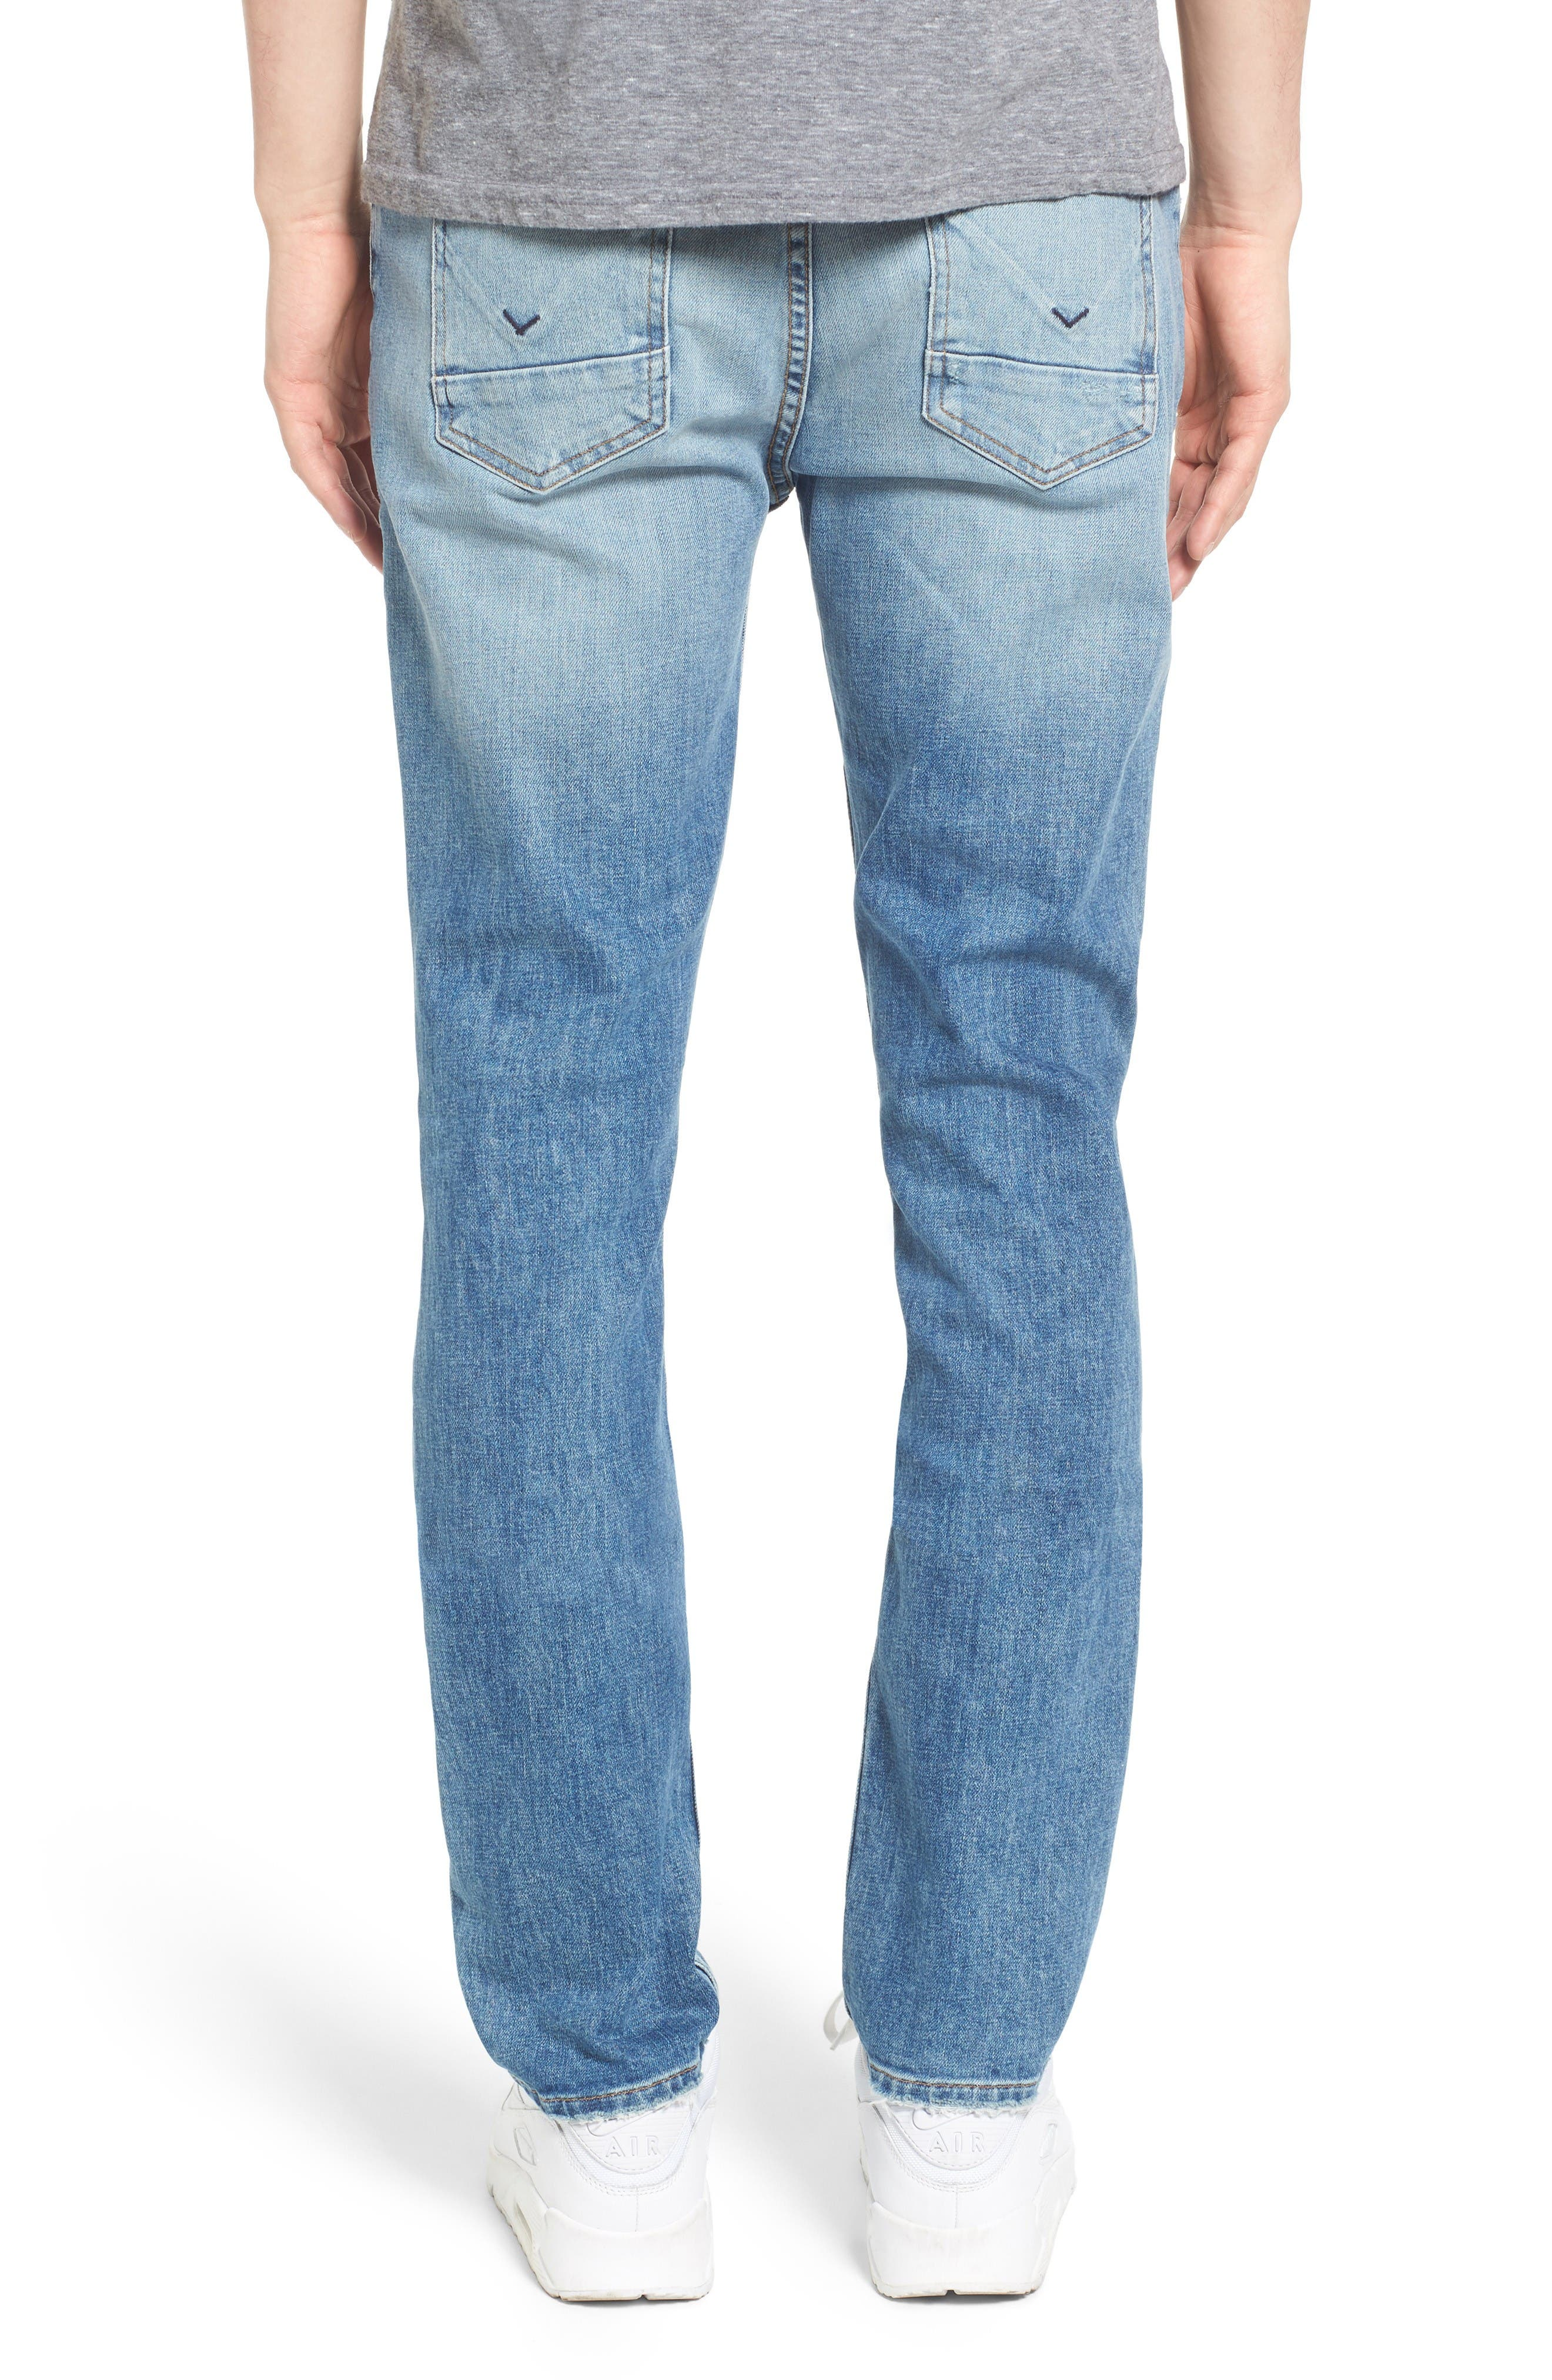 Sator Skinny Fit Jeans,                             Alternate thumbnail 2, color,                             Banned